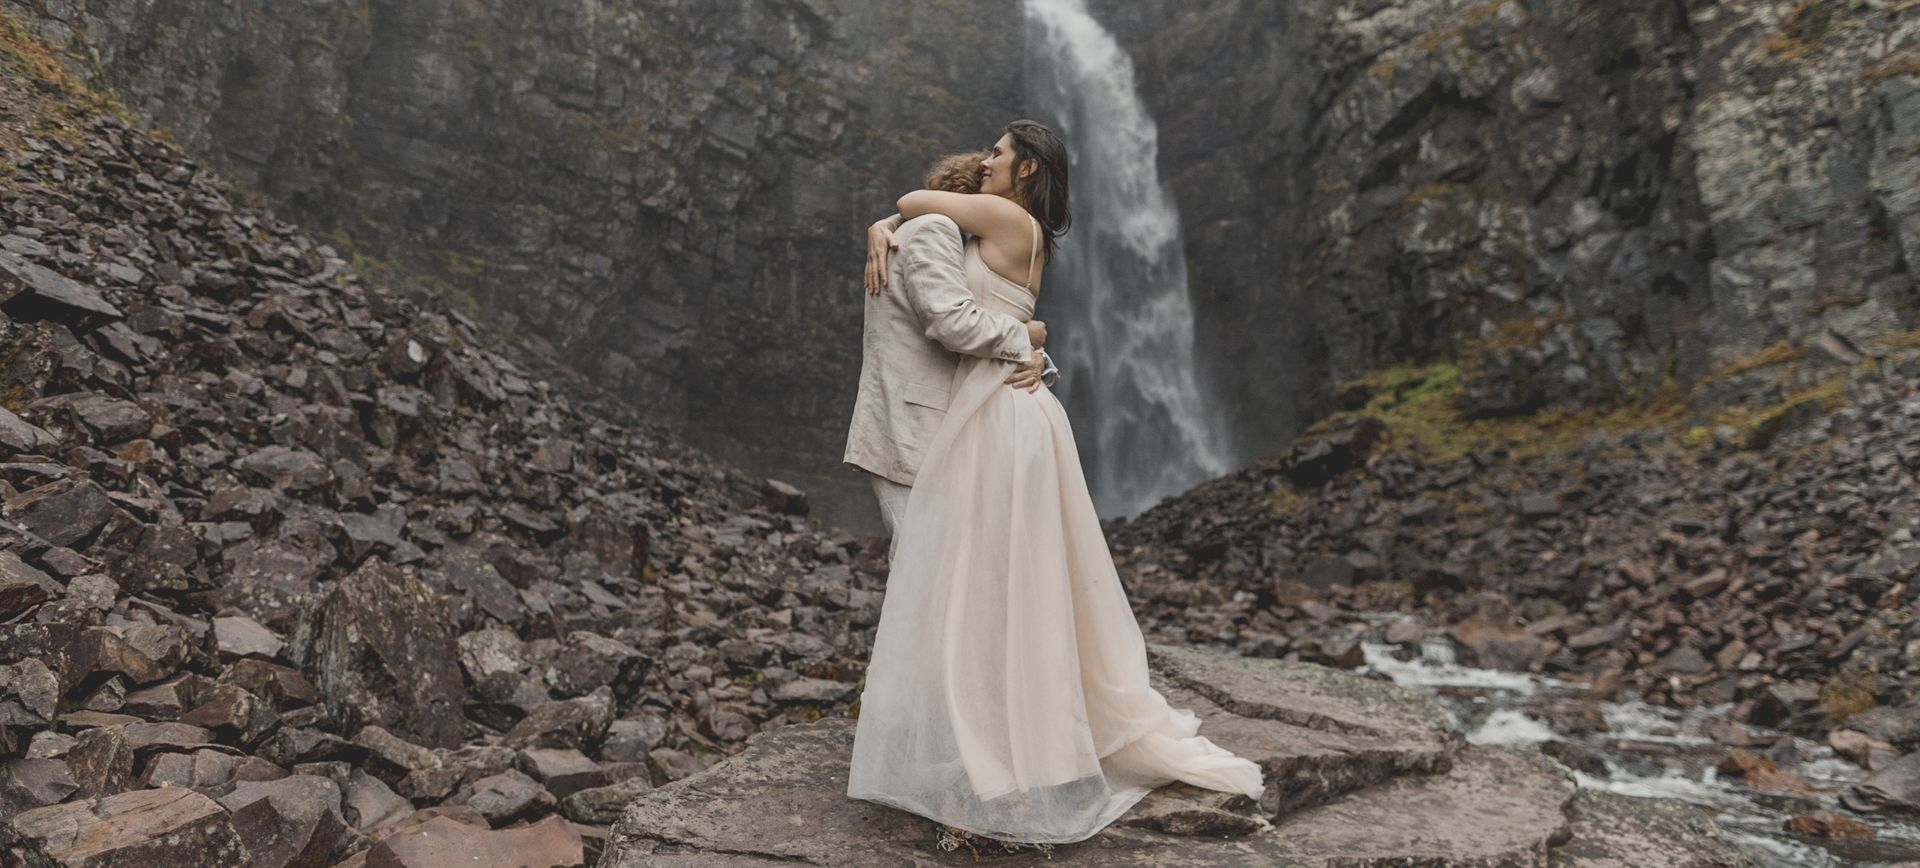 waterfall adventure elopement in sweden